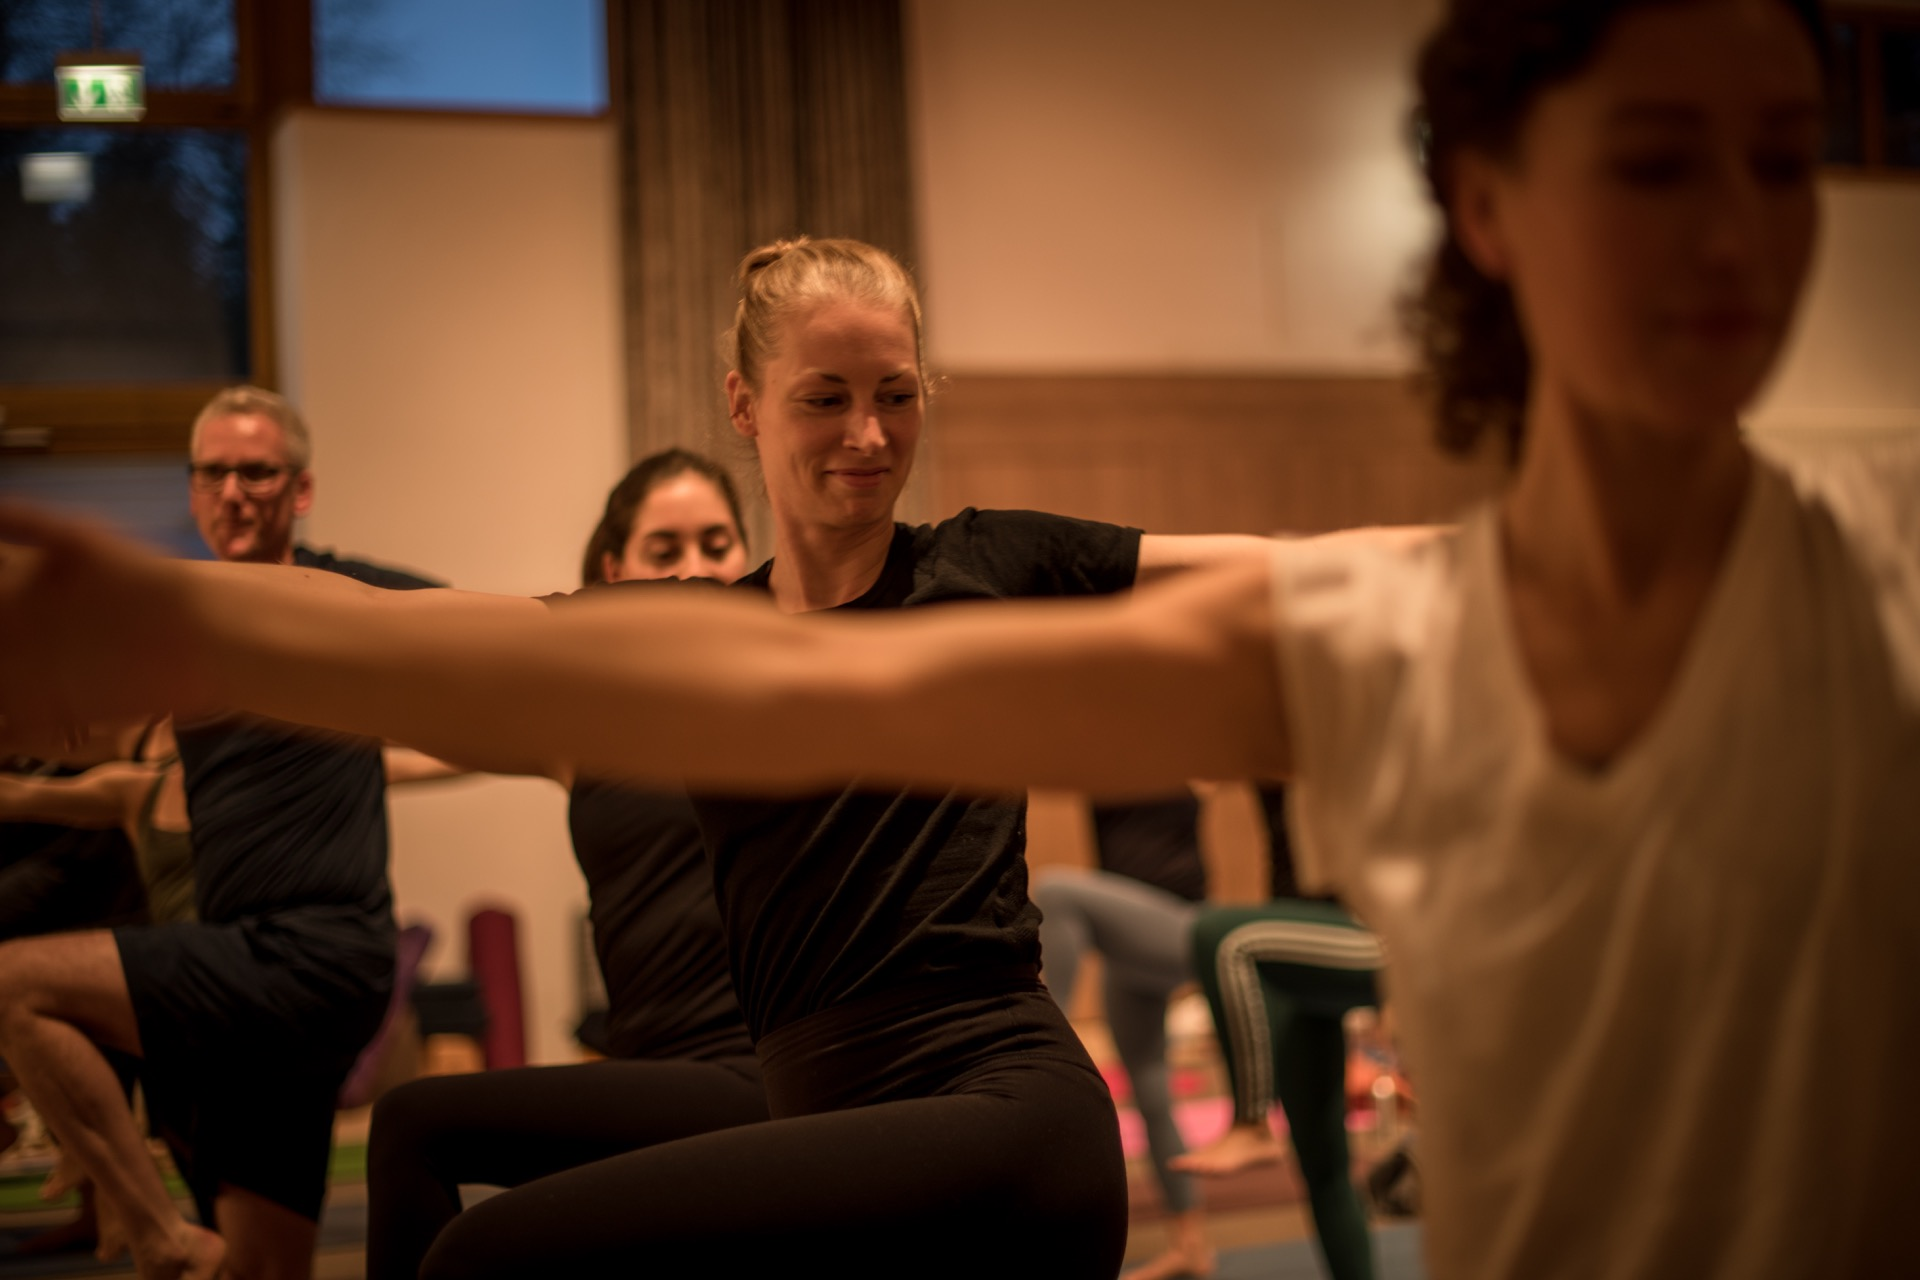 A-New-Beginning-Hie-Kim-Yoga-Retreat-Alina-Matis-Photography-066 - Hie Kim Yoga - Yoga Retreat - Yoga Workshops und Reisen